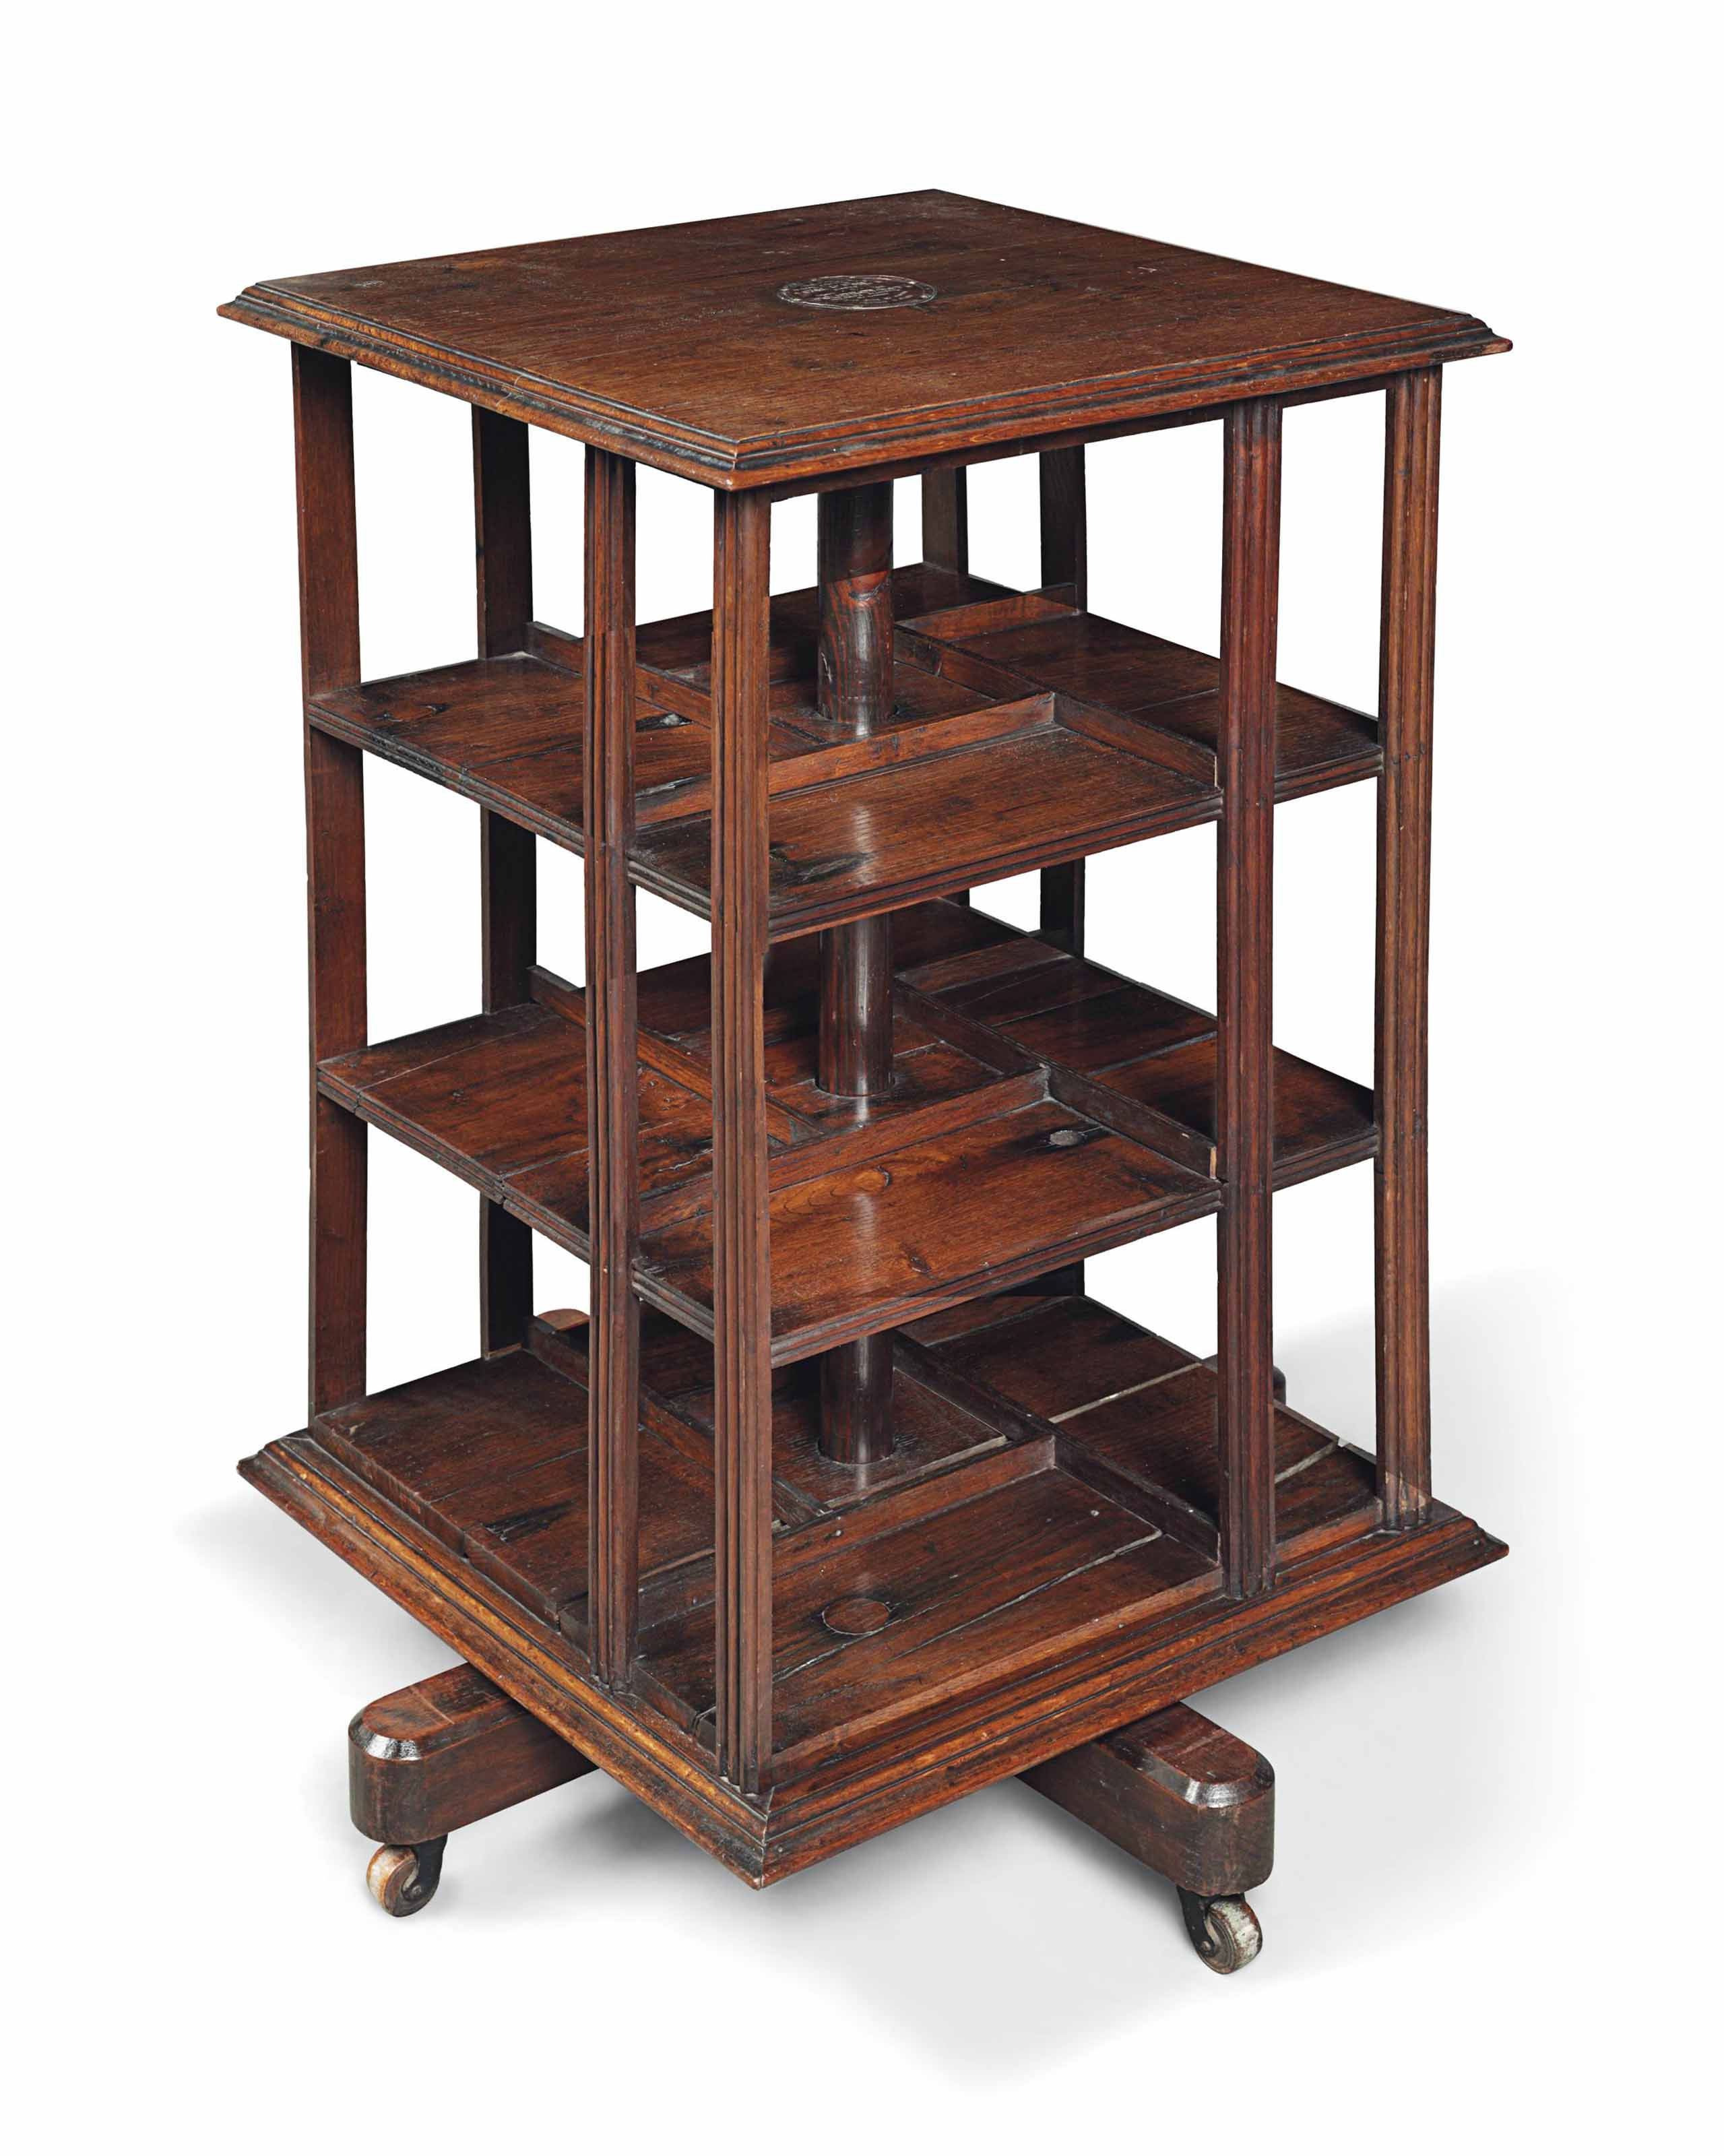 A REVOLVING BOOKCASE MADE OF TIMBERS RECOVERED FROM ADMIRAL LORD NELSON'S FLAGSHIP, THE FOUDROYANT